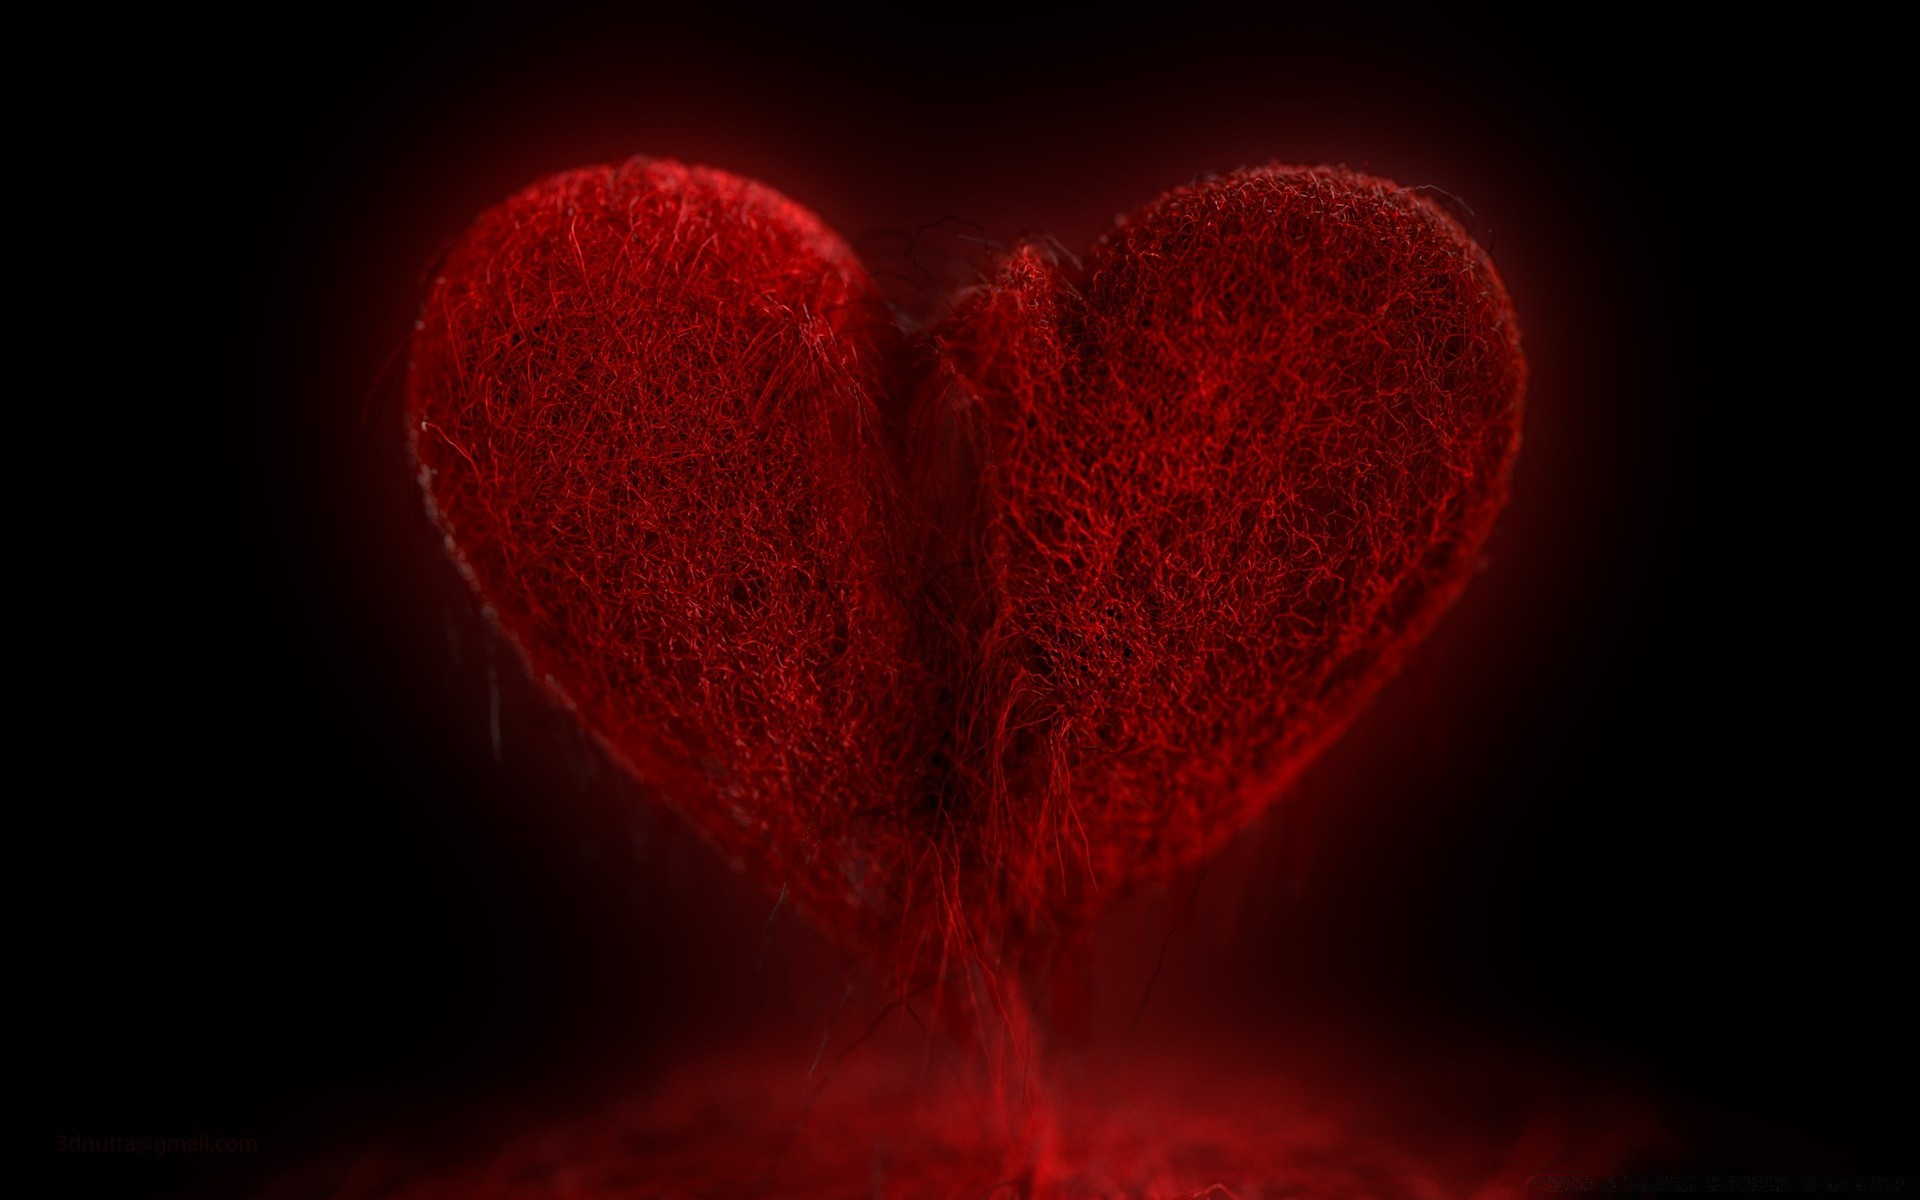 Love Heart Blood Wallpaper : Broken Heart. Android wallpapers for free.